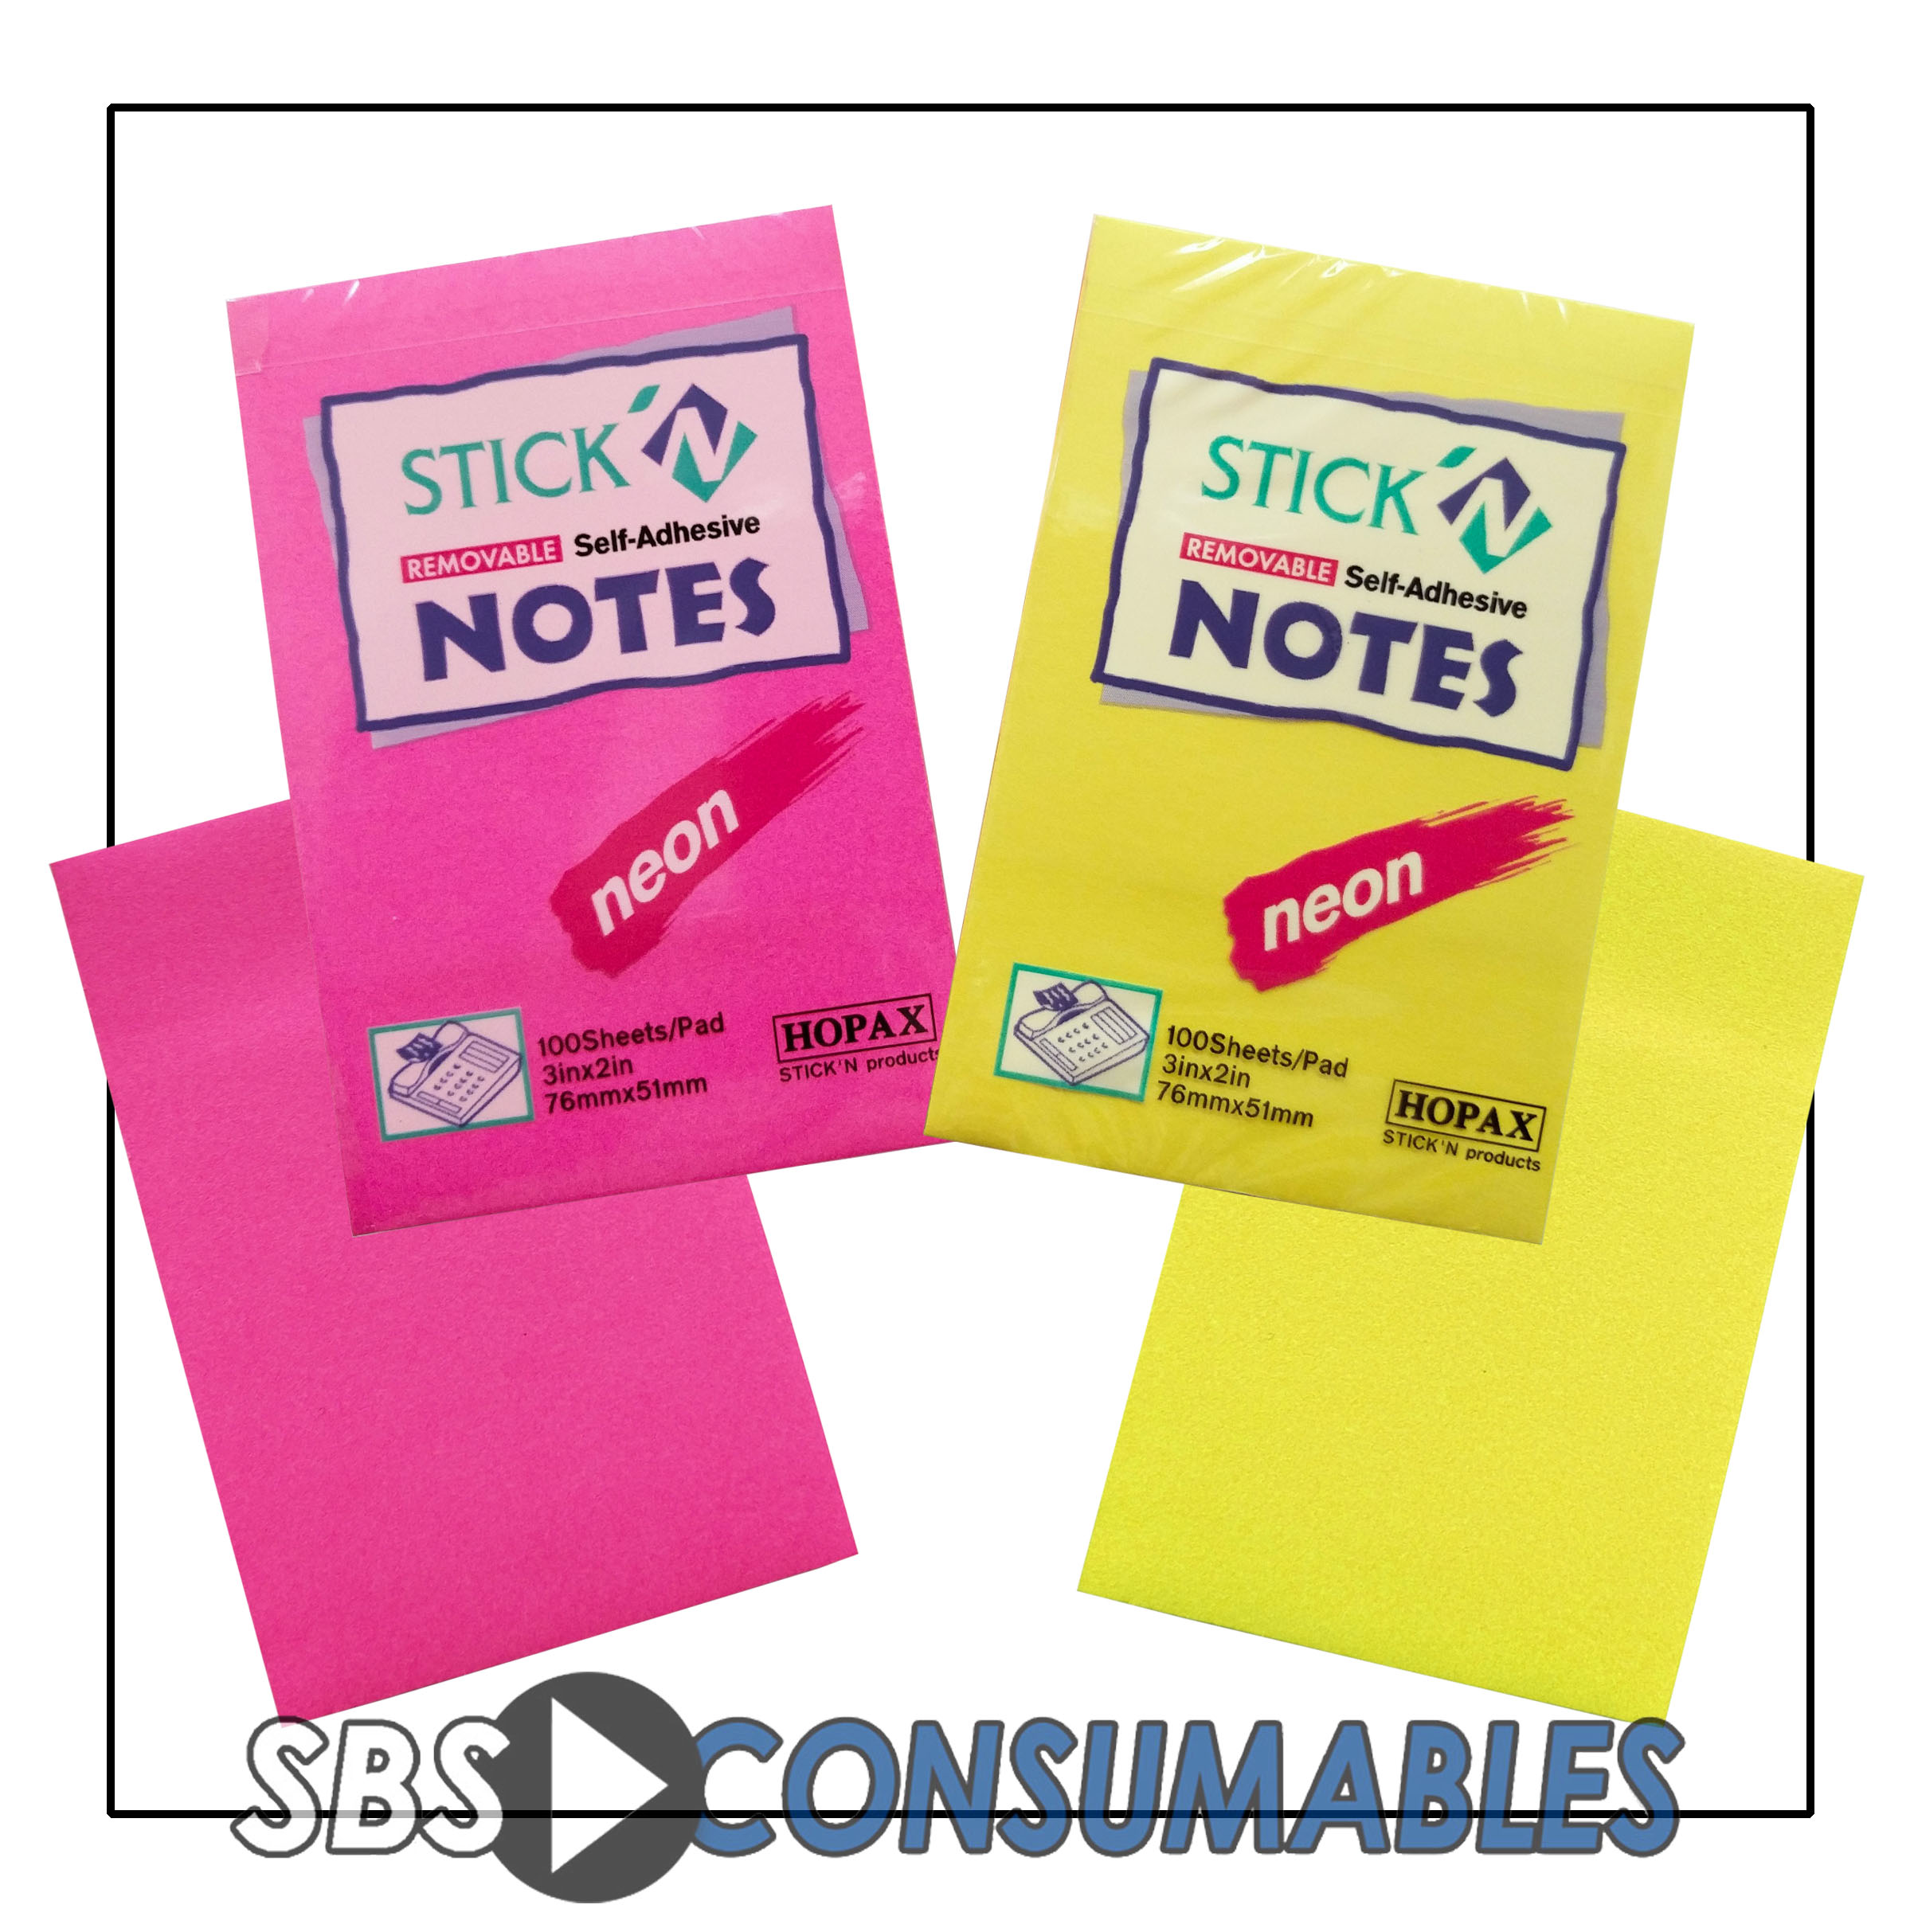 Hopax Neon Post-It Notes - 100 Sheets | Office Supplies UK